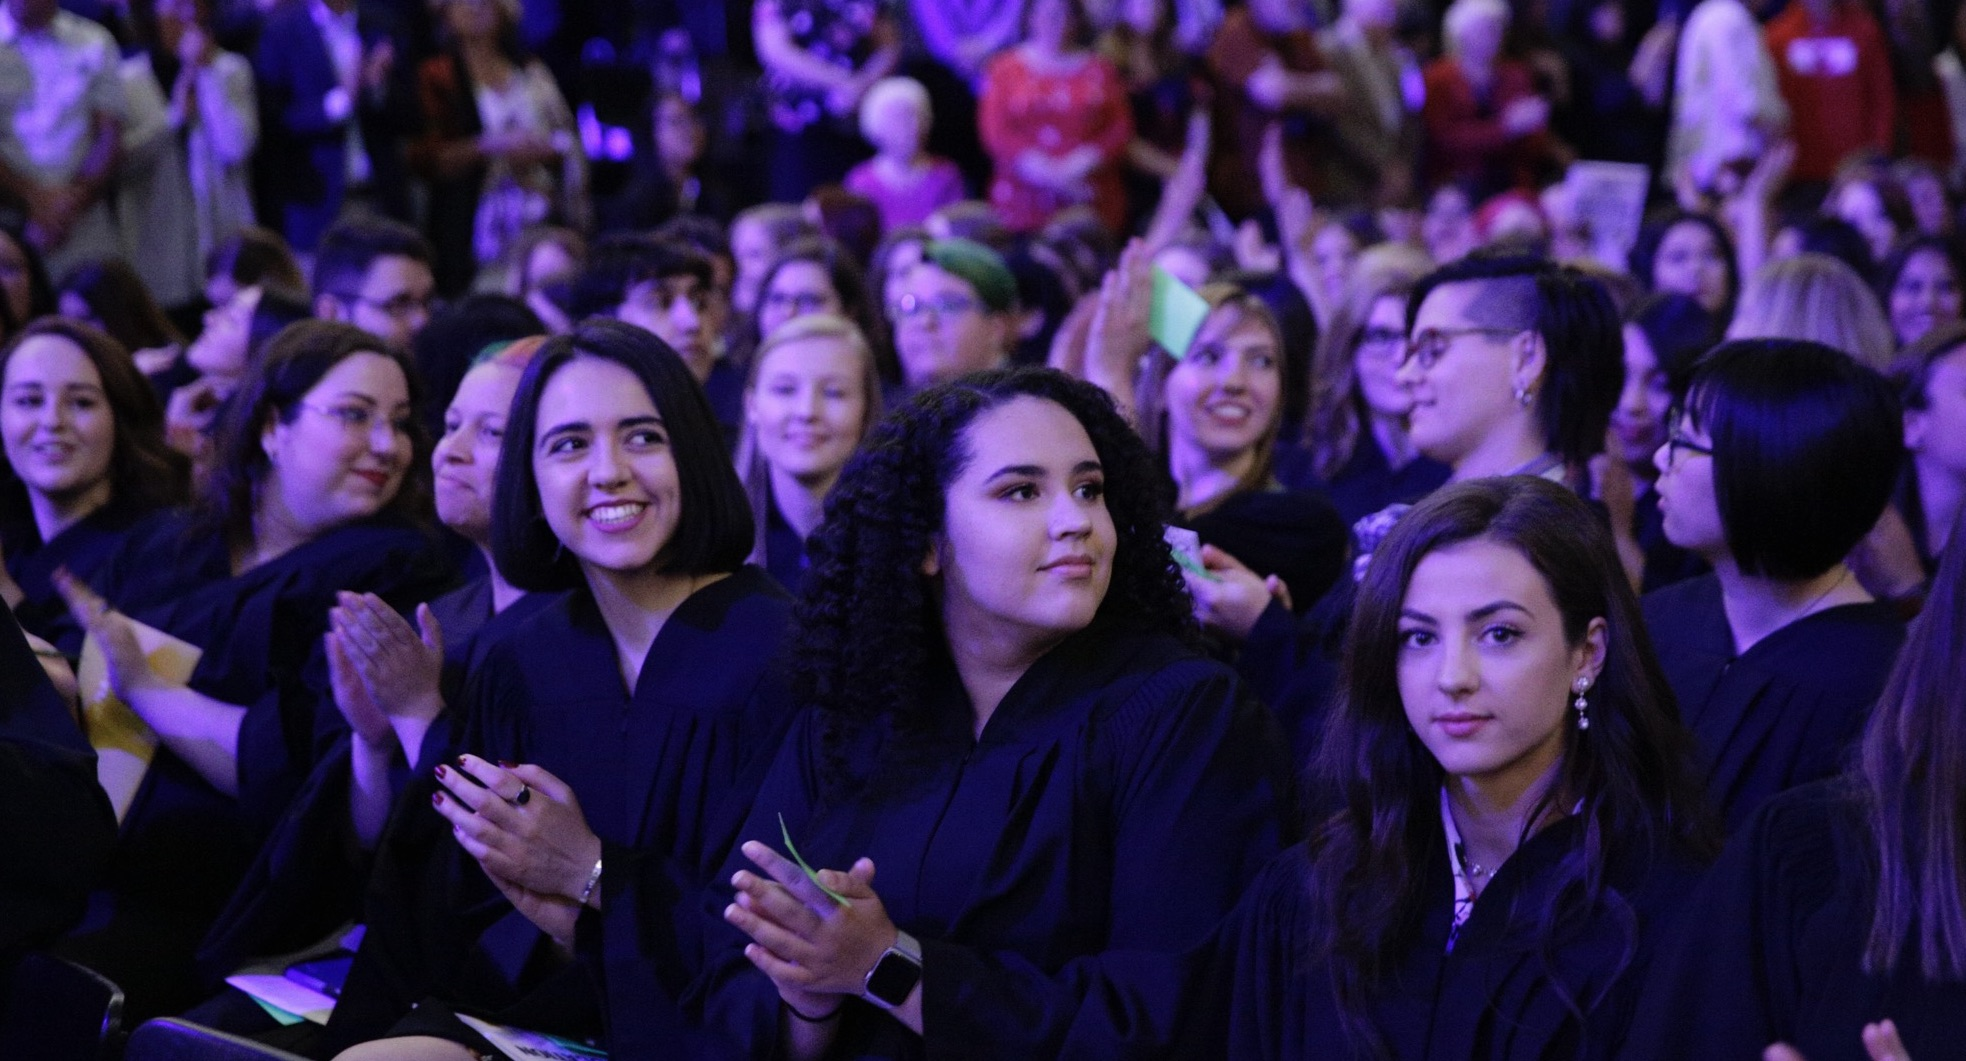 Undergraduate students in robes at convocation ceremony